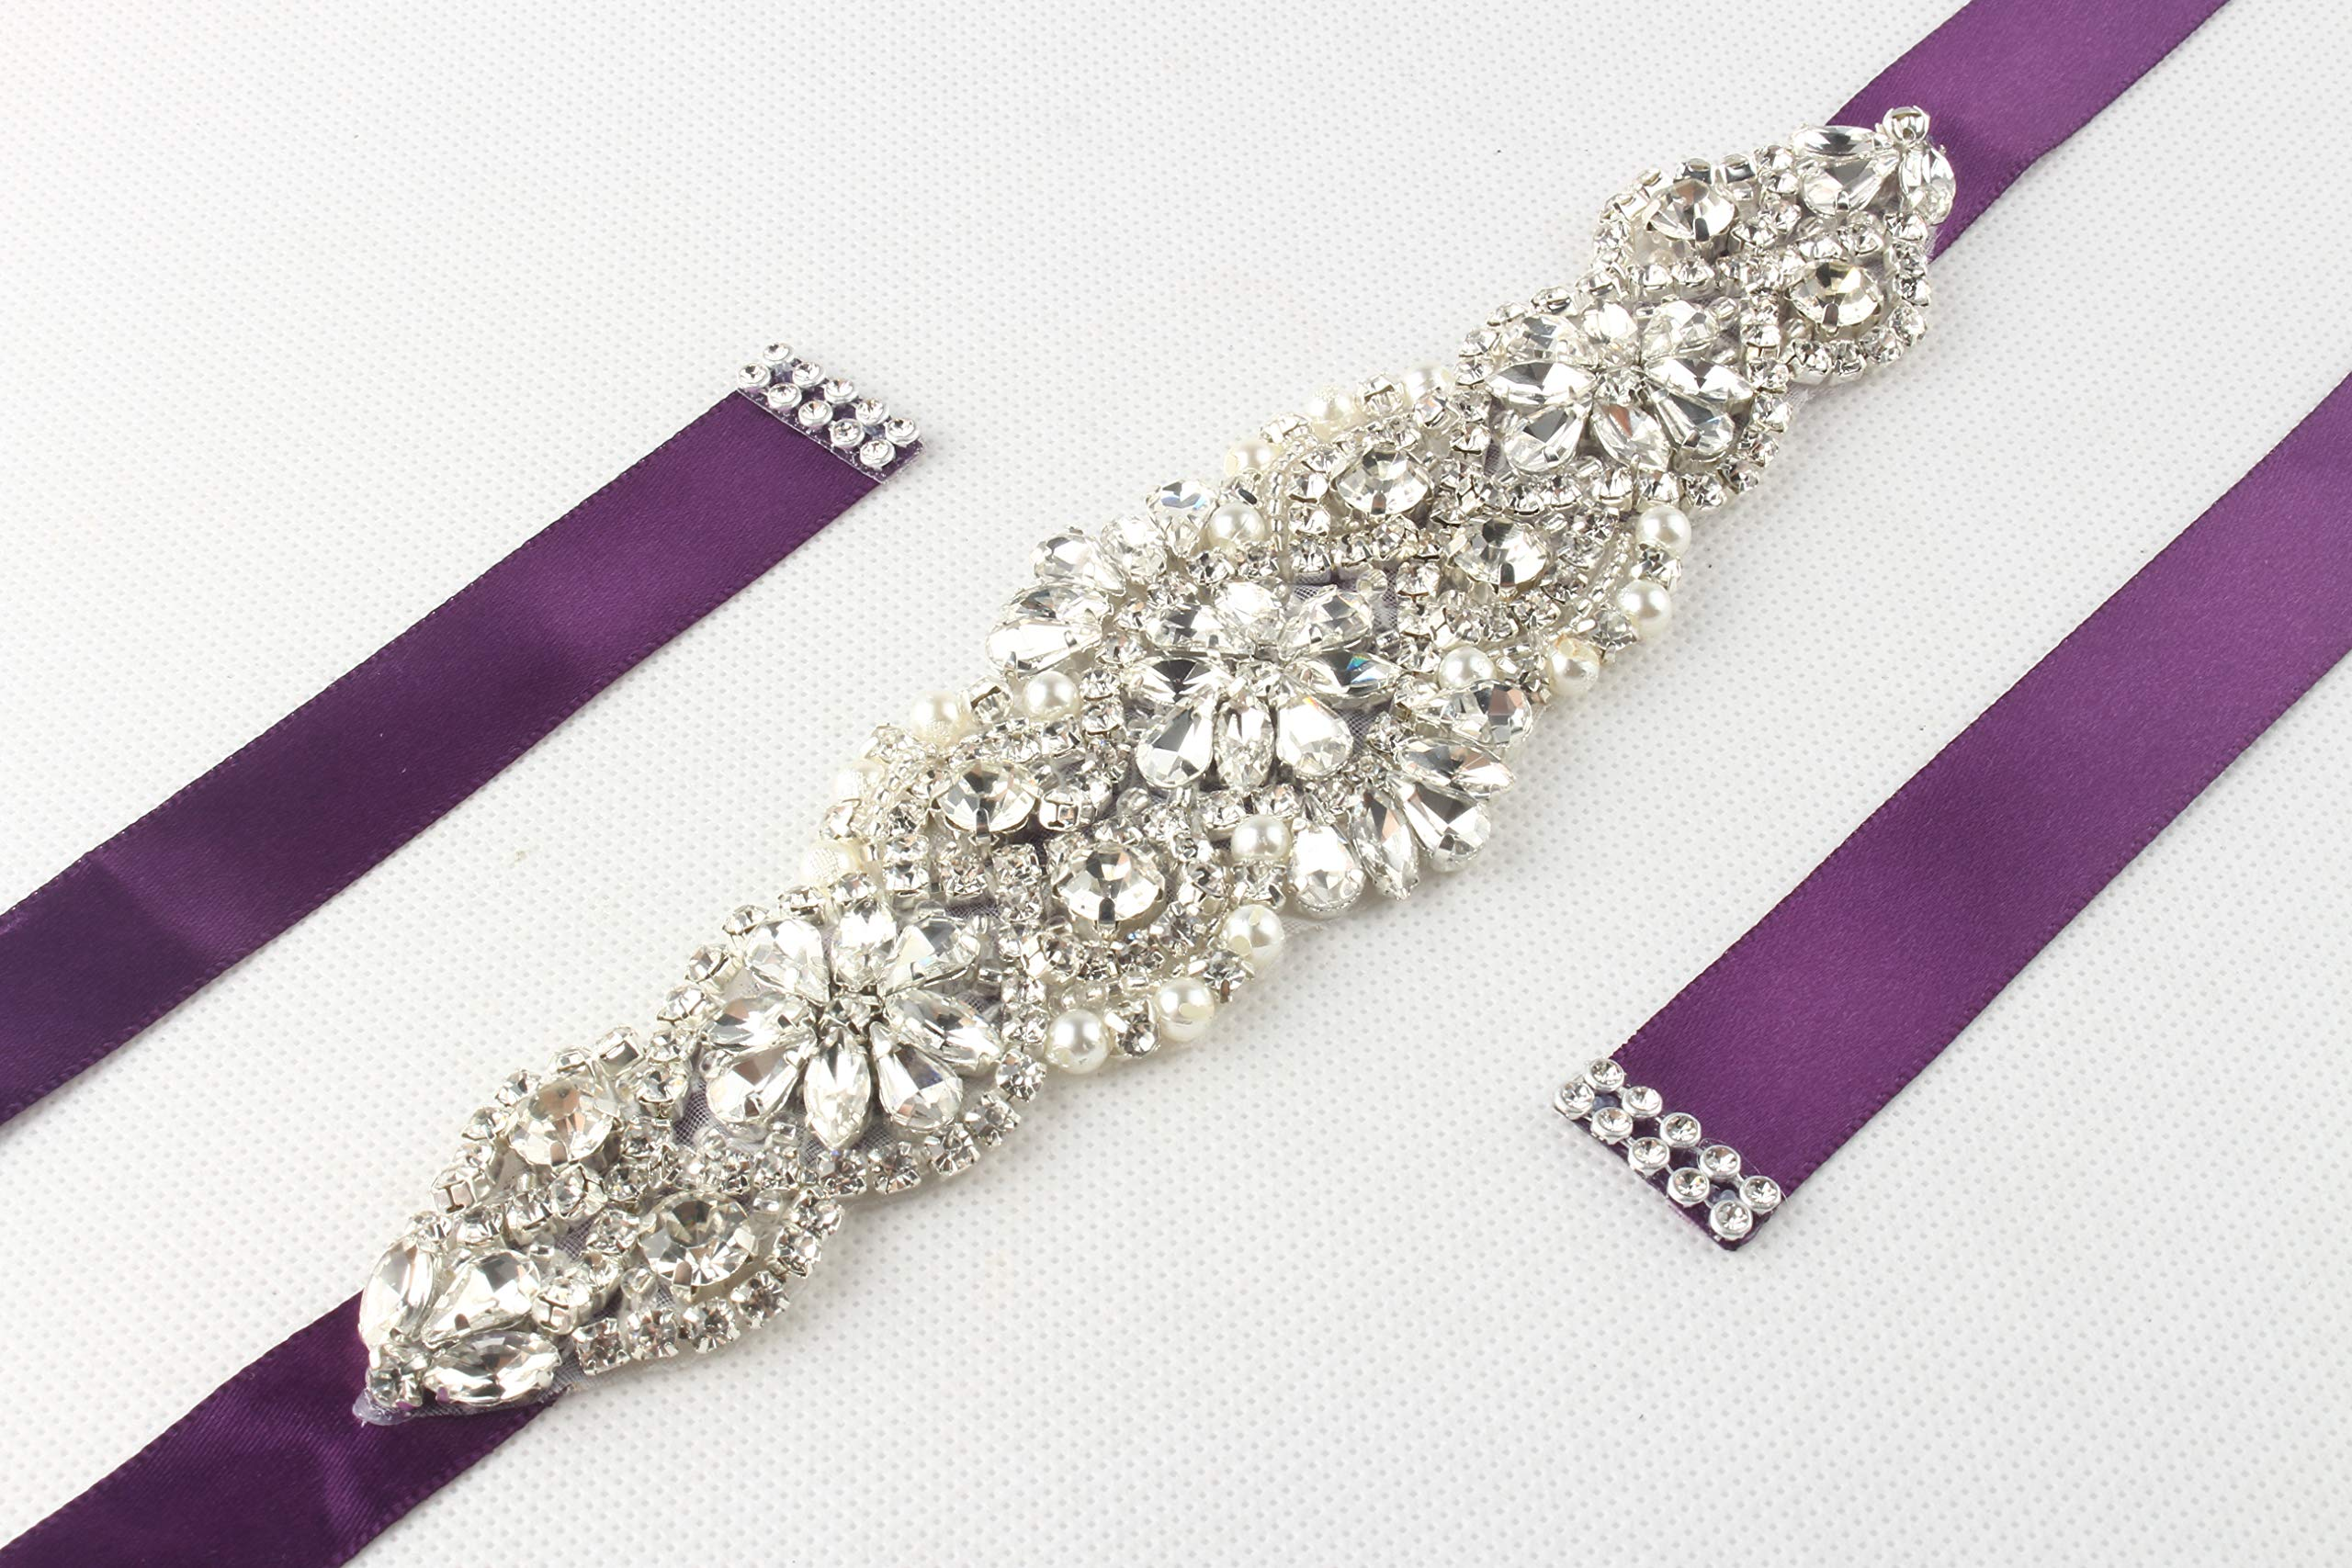 WILTEEXS Handmade Bridal Belt Wedding Belts Sashes Rhinestone Crystal Beads Belt For Bridal Gowns (Slive-purple)